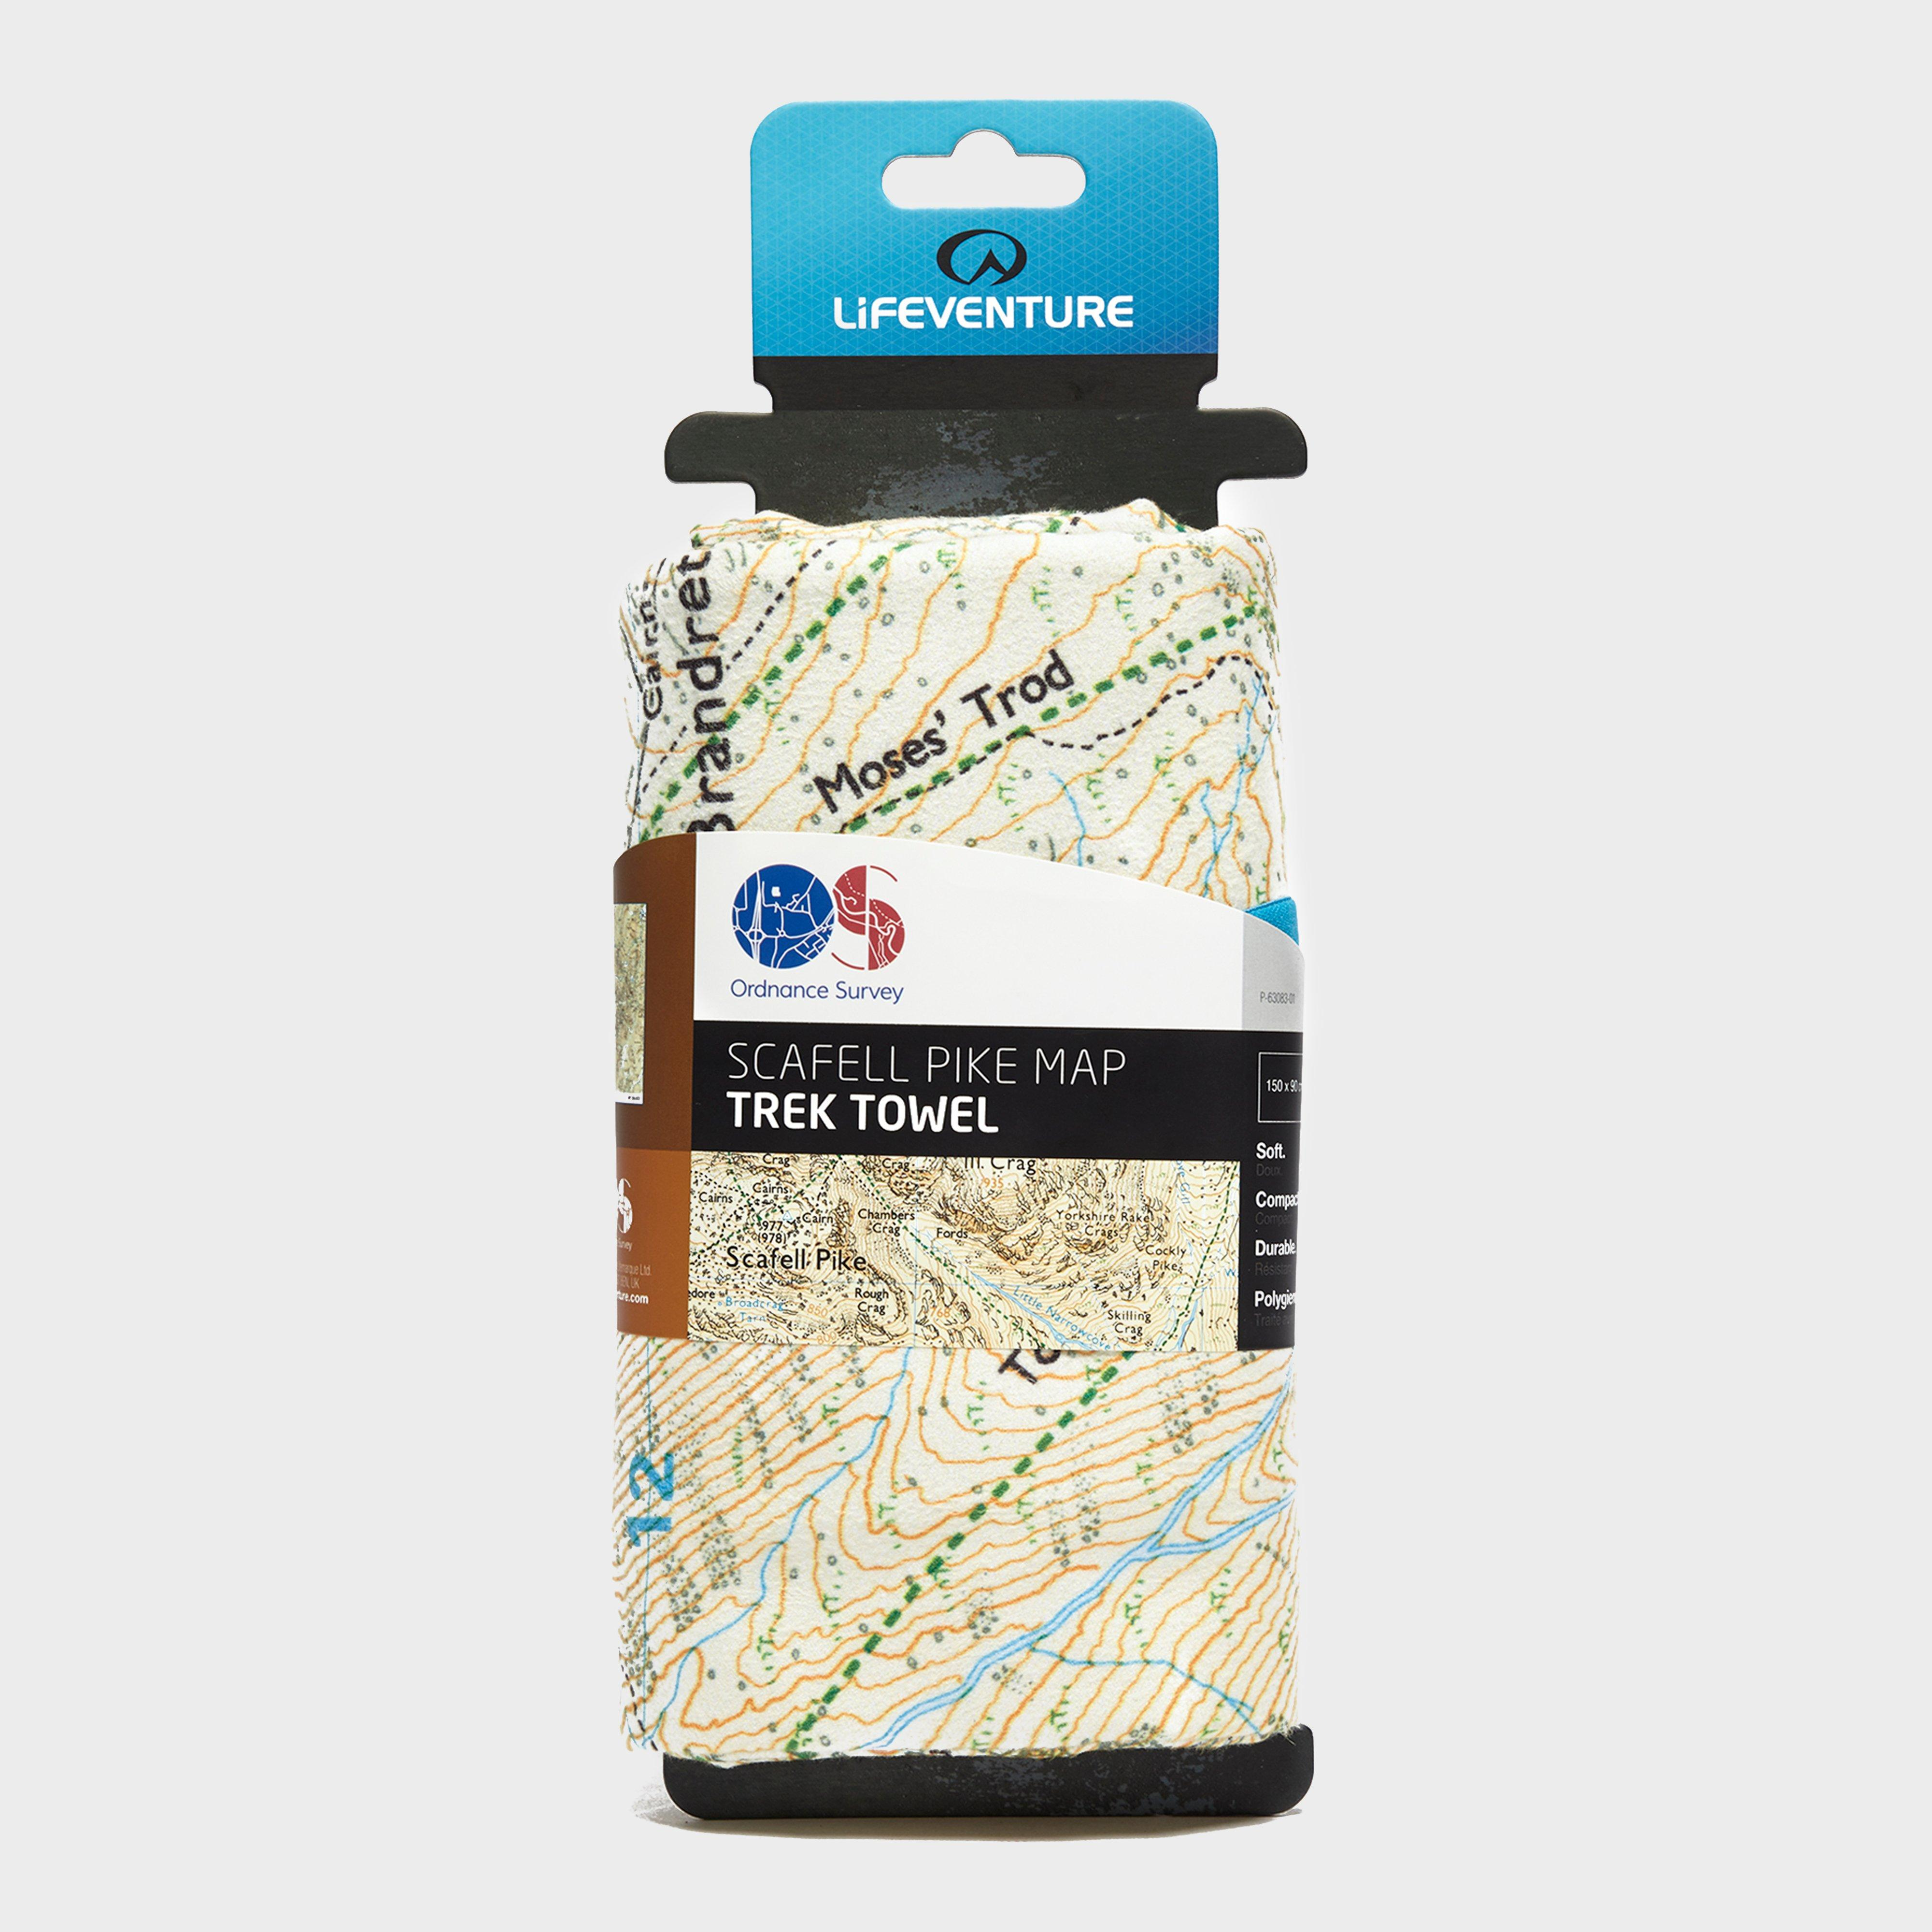 Lifeventure Lifeventure Giant Travel Towel (OS Scafell Pike Map Print) - N/A, N/A